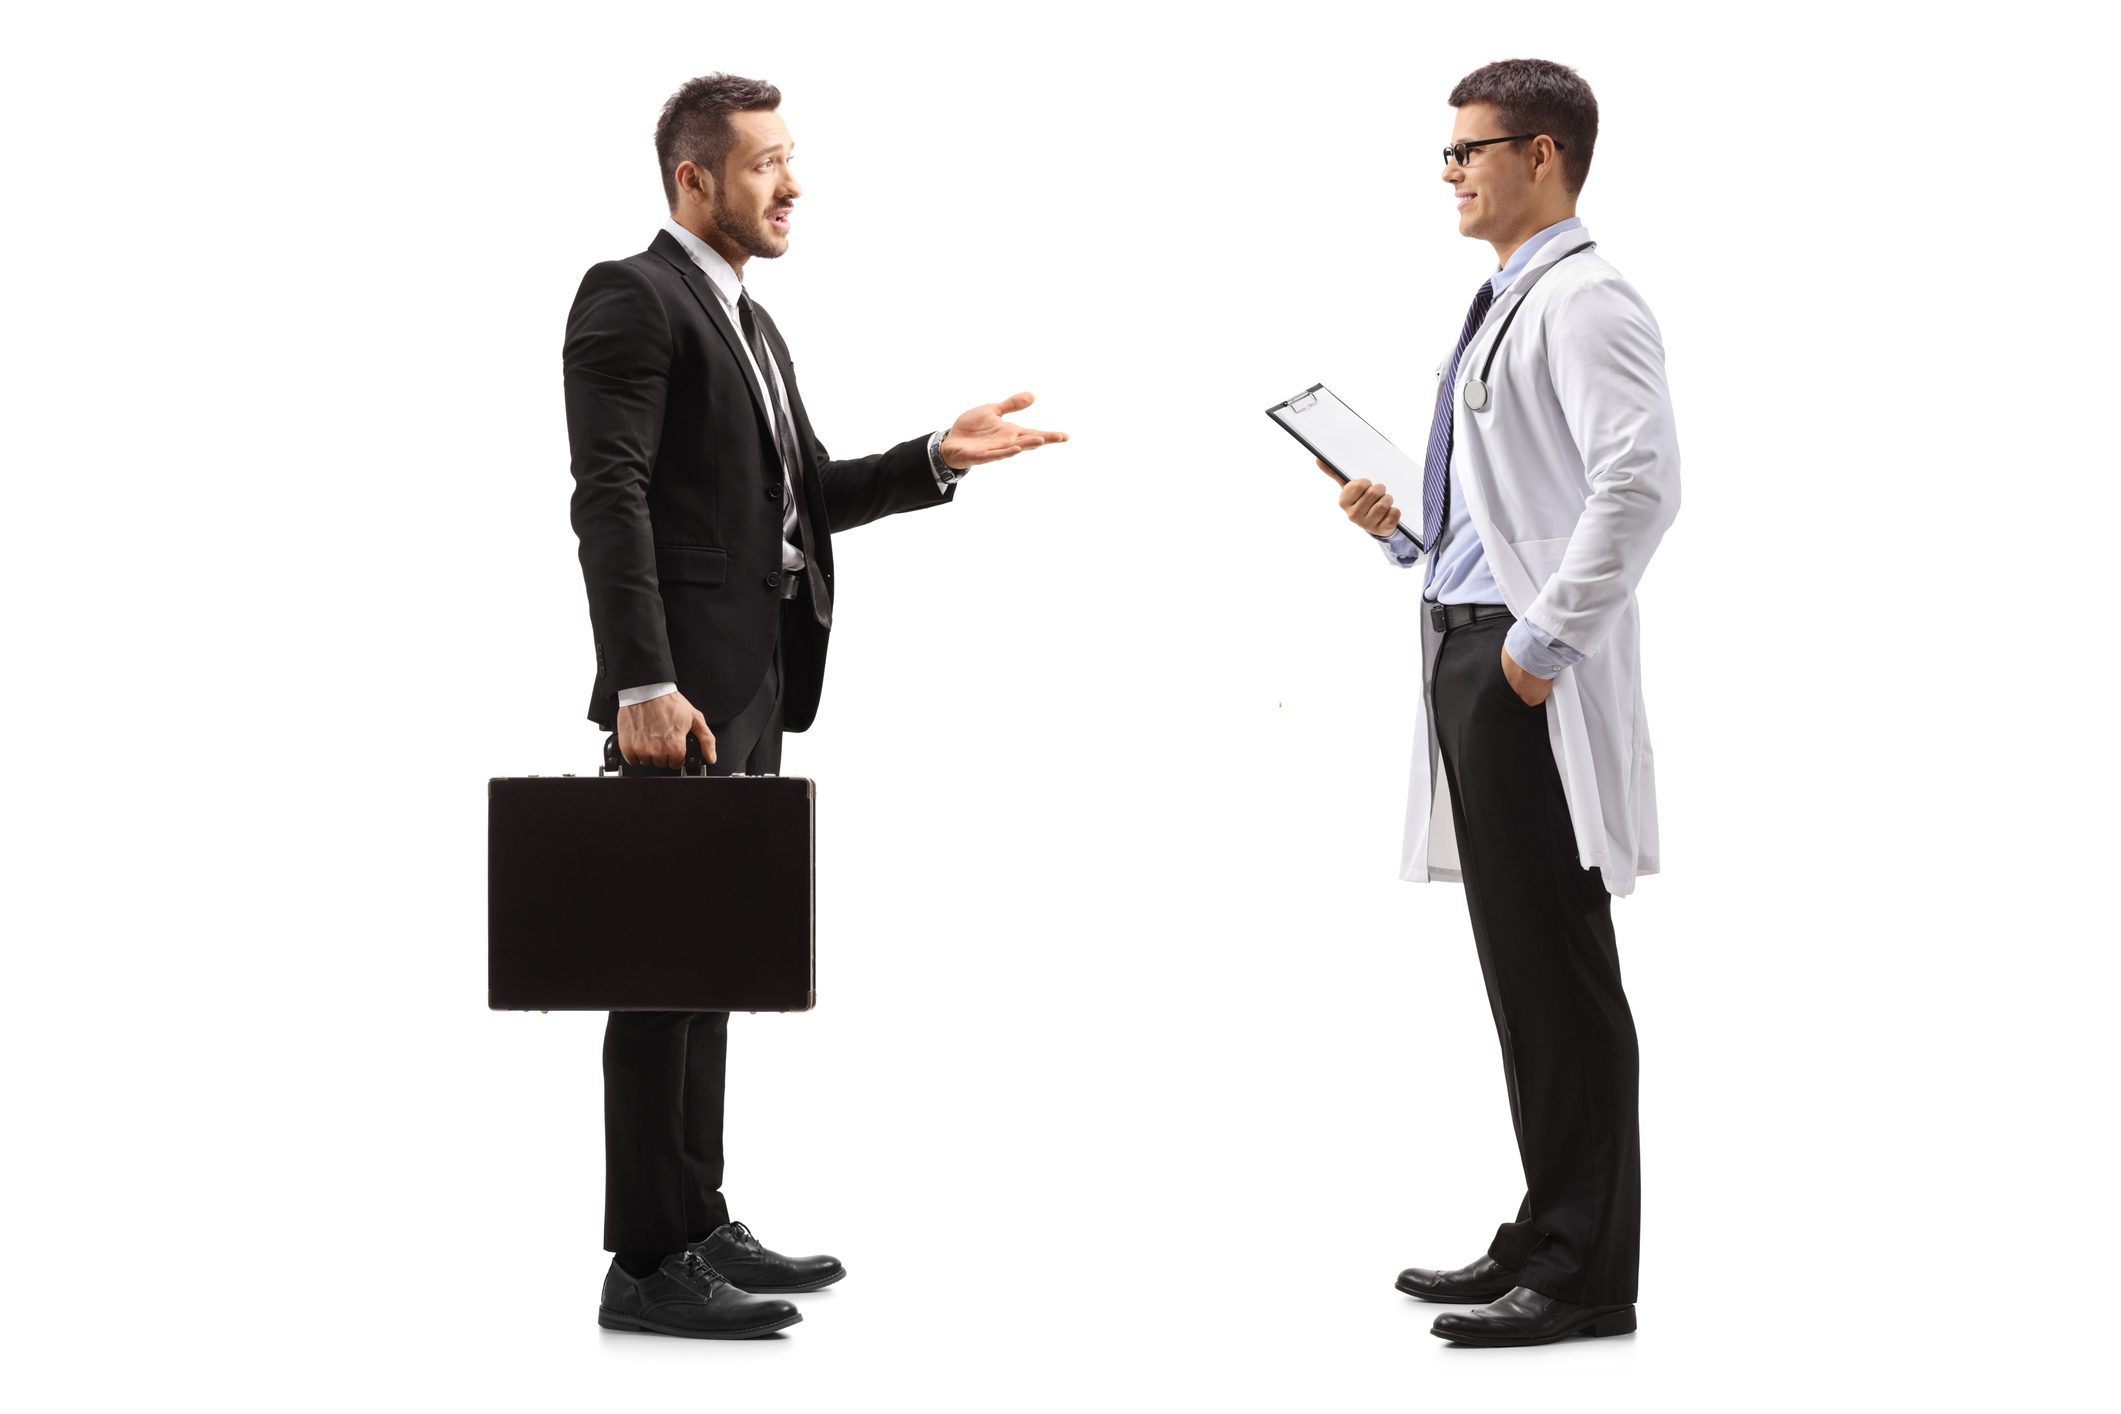 Pharmaceutical company representative talking to a doctor